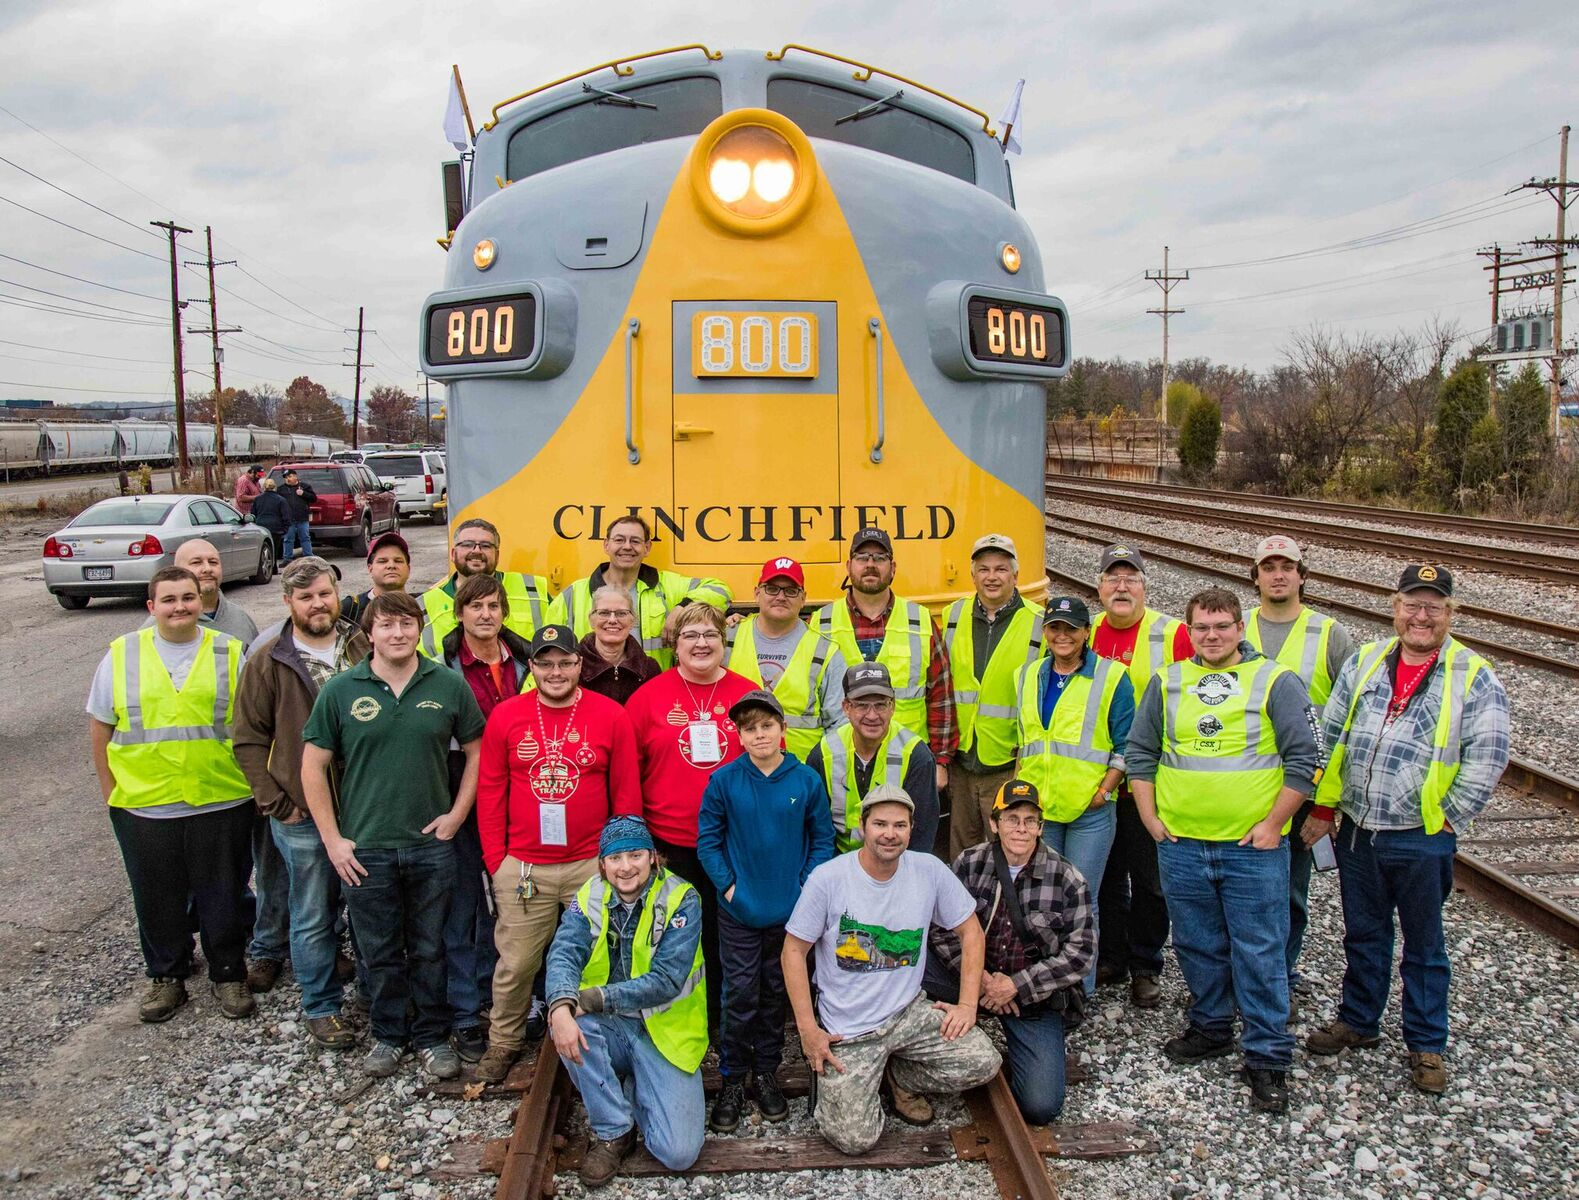 SARM Volunteers and friends that chased the Santa Train. Mark Glucksman photo.